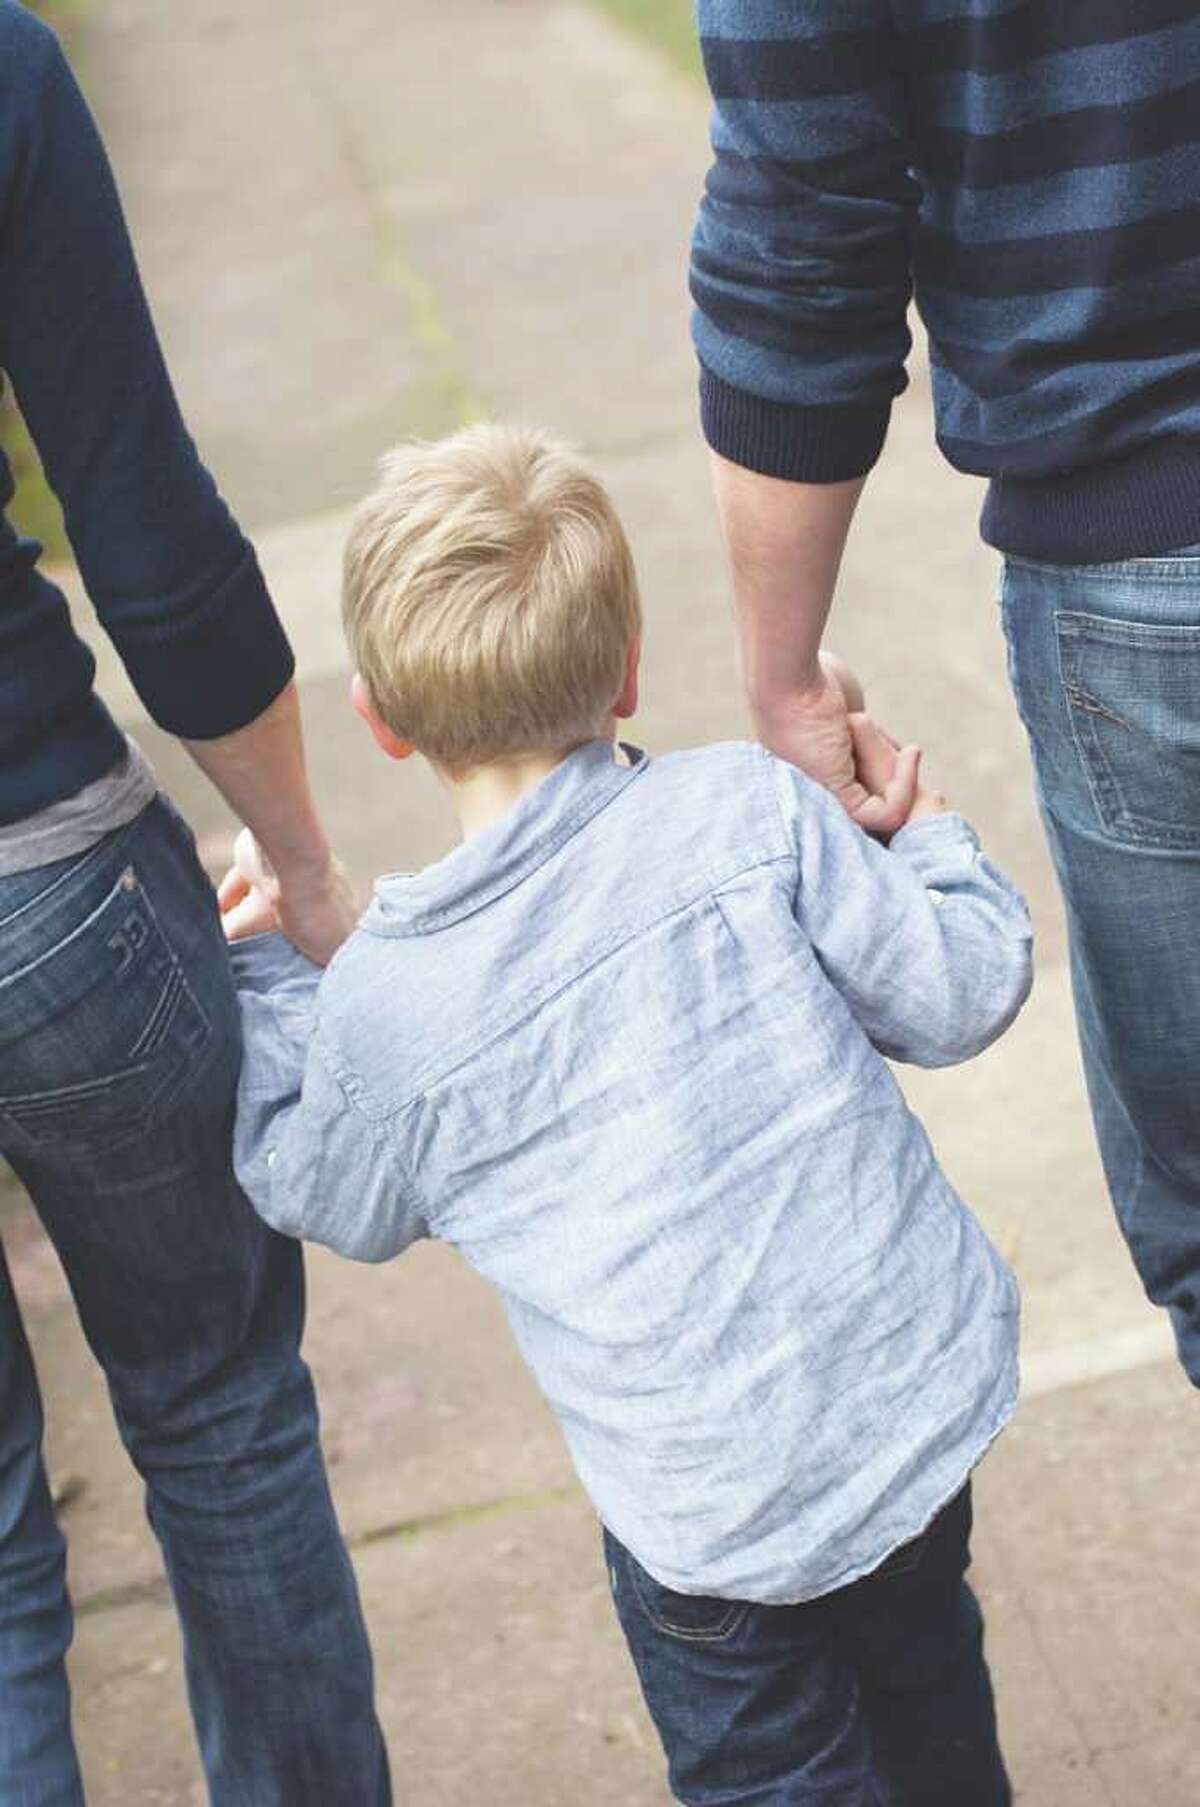 Tip: It is much more likely that a child could be victimized by someone they know rather than by a stranger. (Photo: iStockphoto.com/Ron Hope)